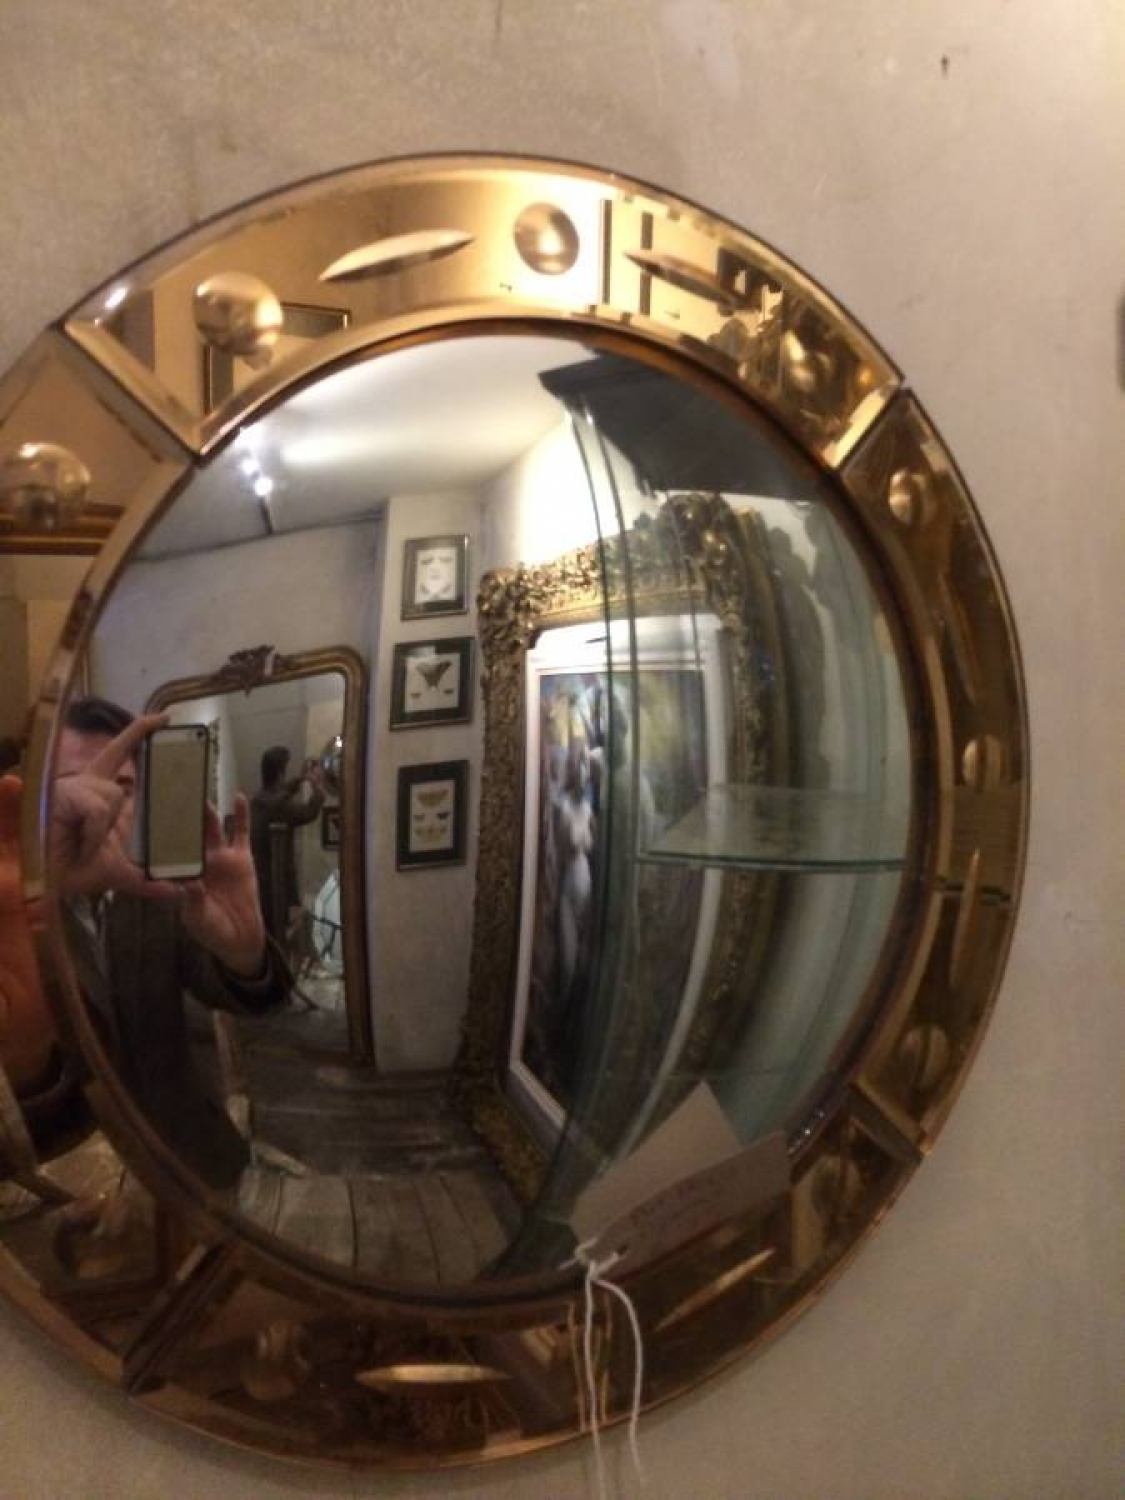 Art Deco Convex Mirror In Decorative With Regard To Decorative Convex Mirrors (Image 5 of 15)